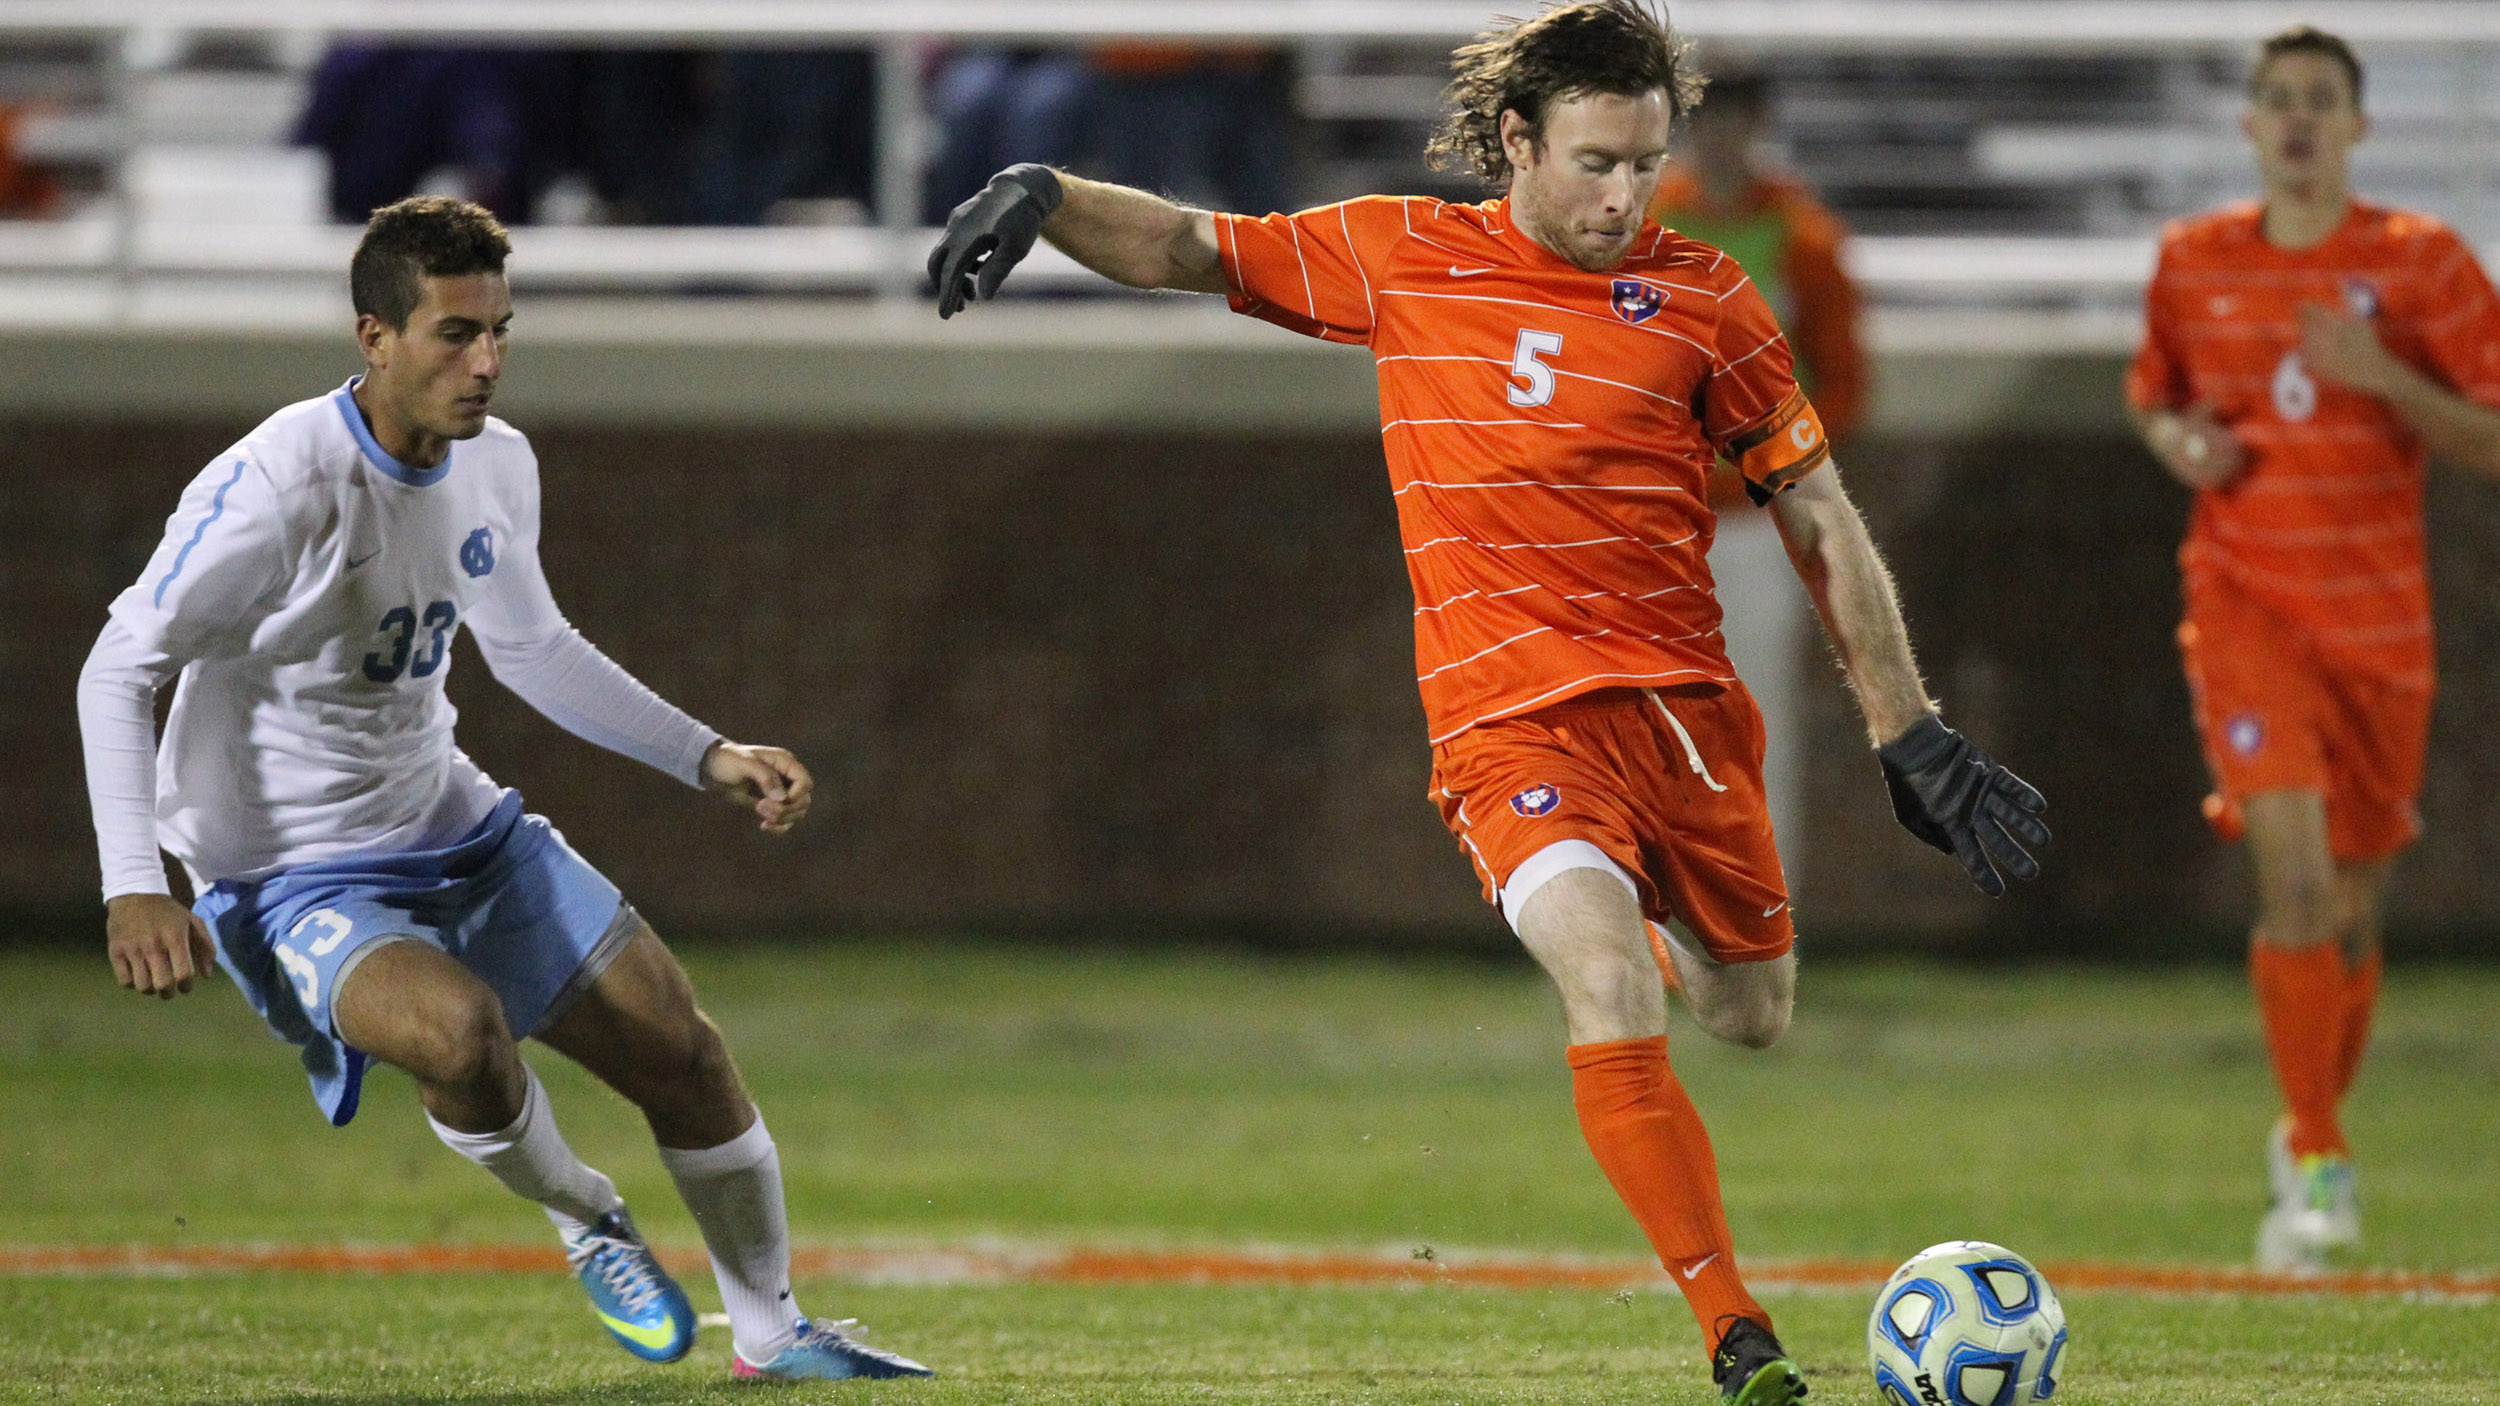 McNamara Named to All-ACC Tournament Team